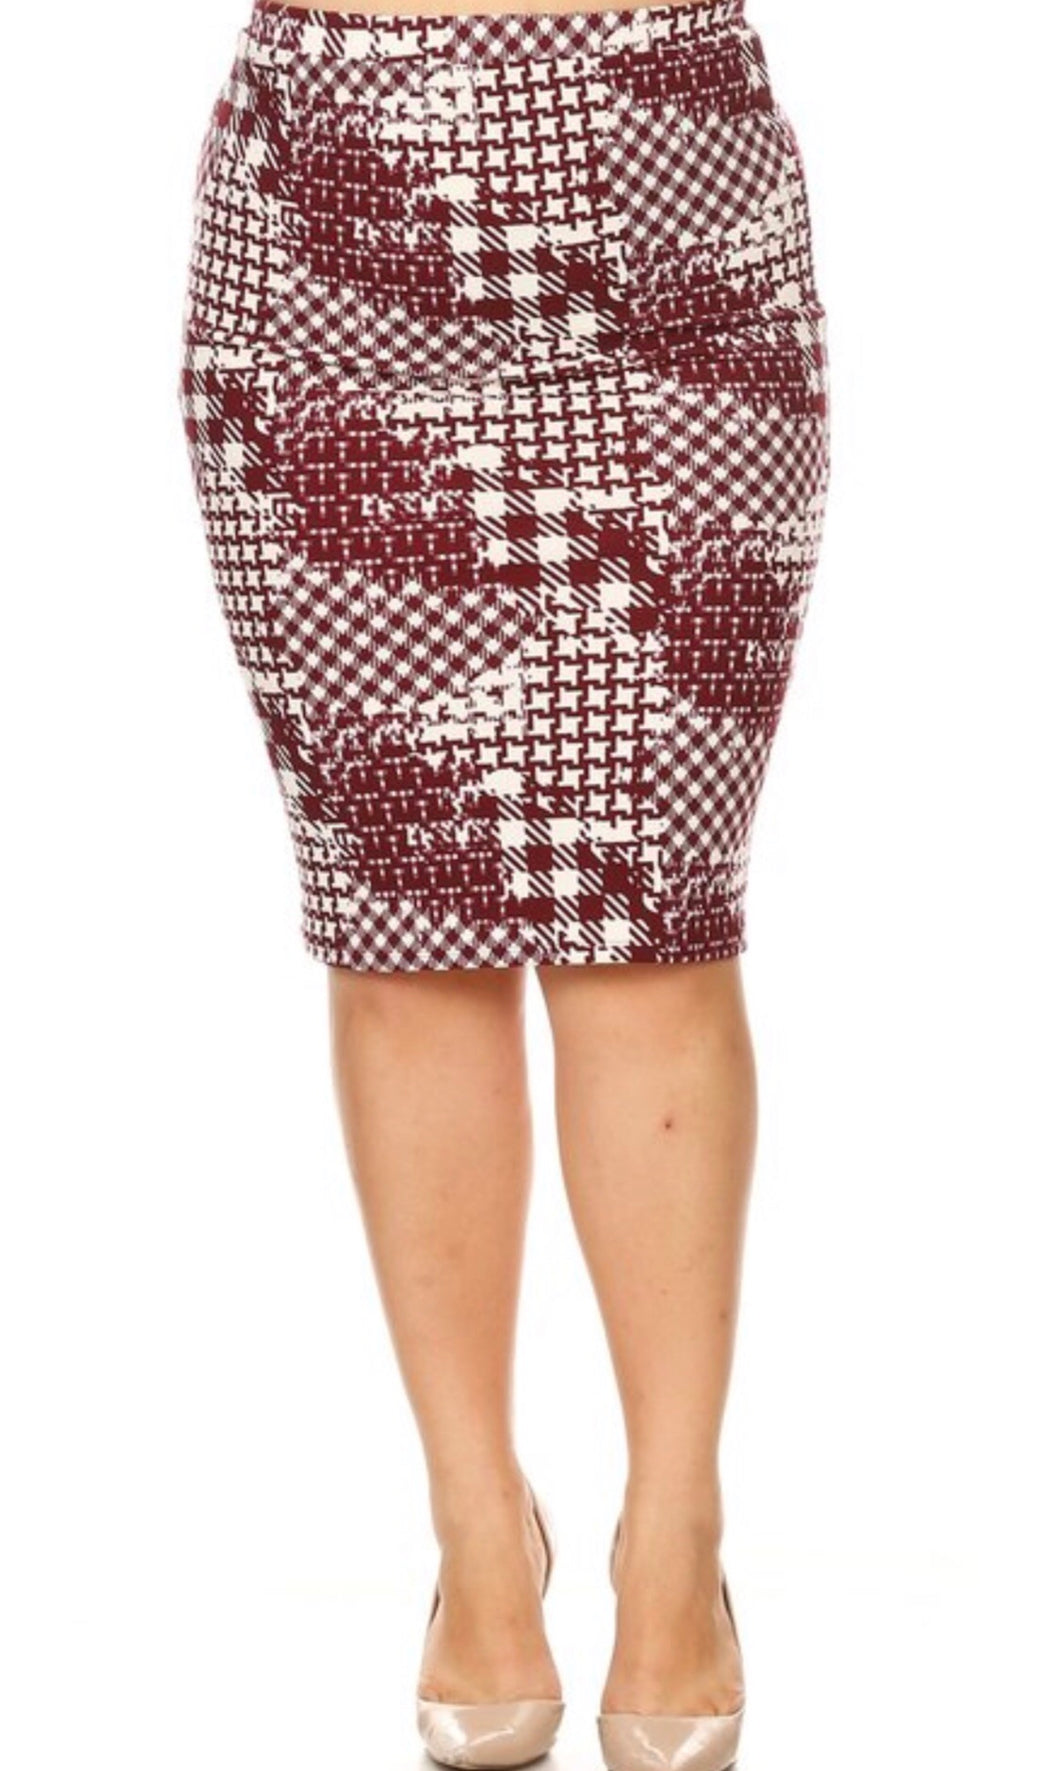 Bella Patterned Skirt